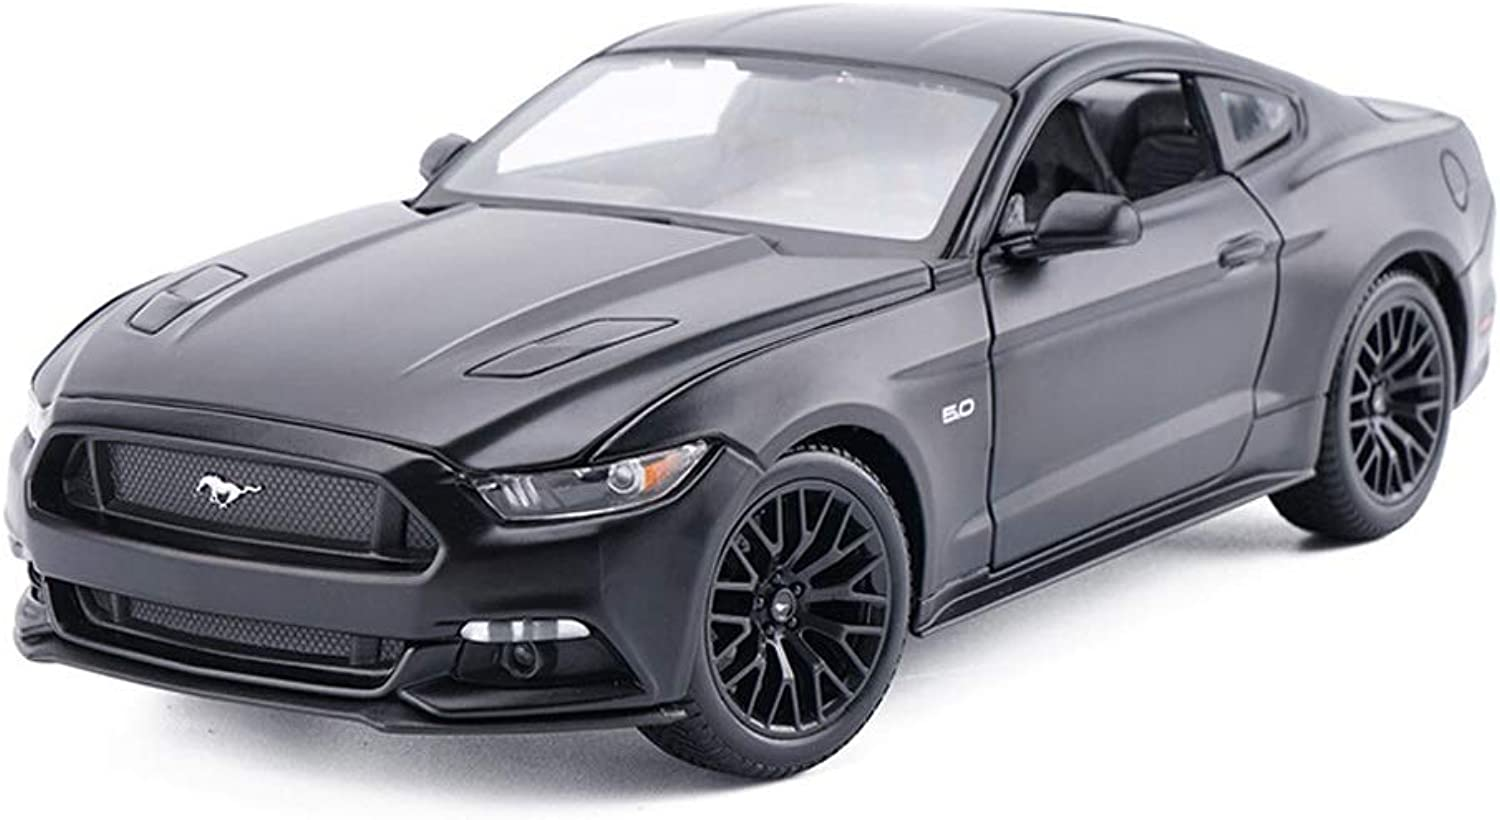 SHLINCar model Alloy Car Die Casting Car Model Ford Mustang Car Model 1 24 Toy Car Model Decoration Gift For Boys Toddlers Kids (color   Black)